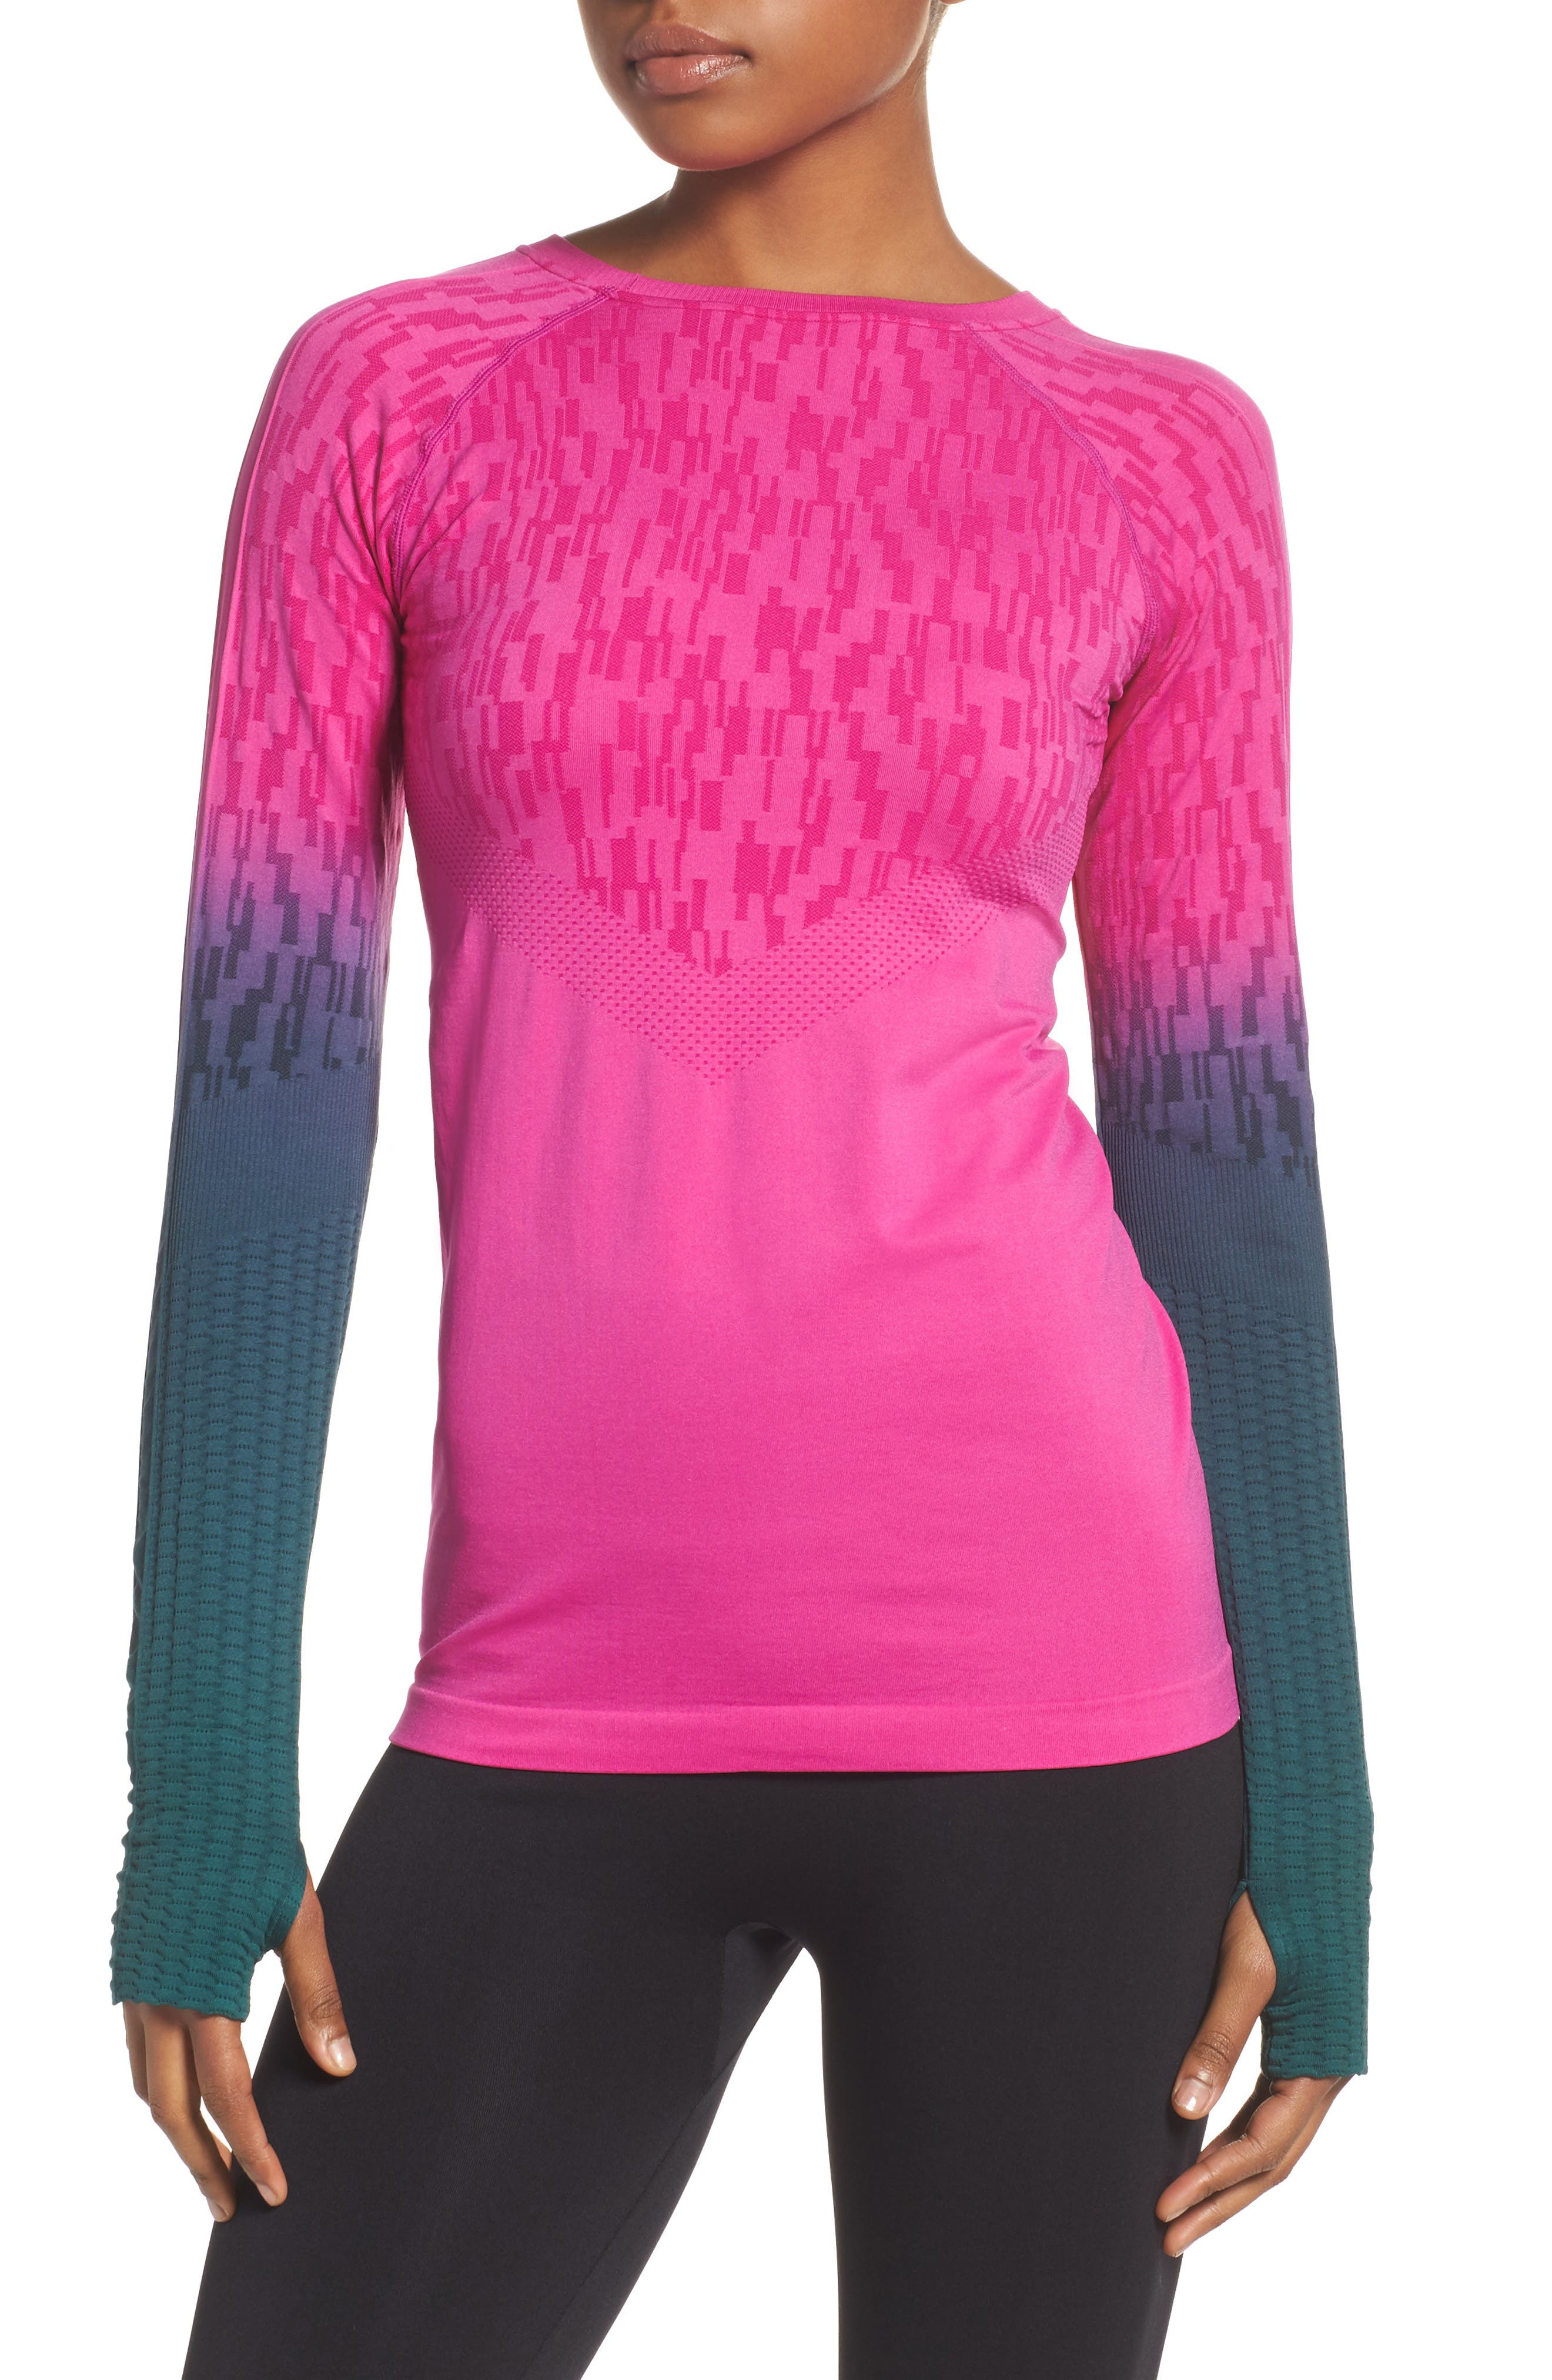 Odyssey Running Tee,                             Main thumbnail 1, color,                             Pink/ Nocturne Green